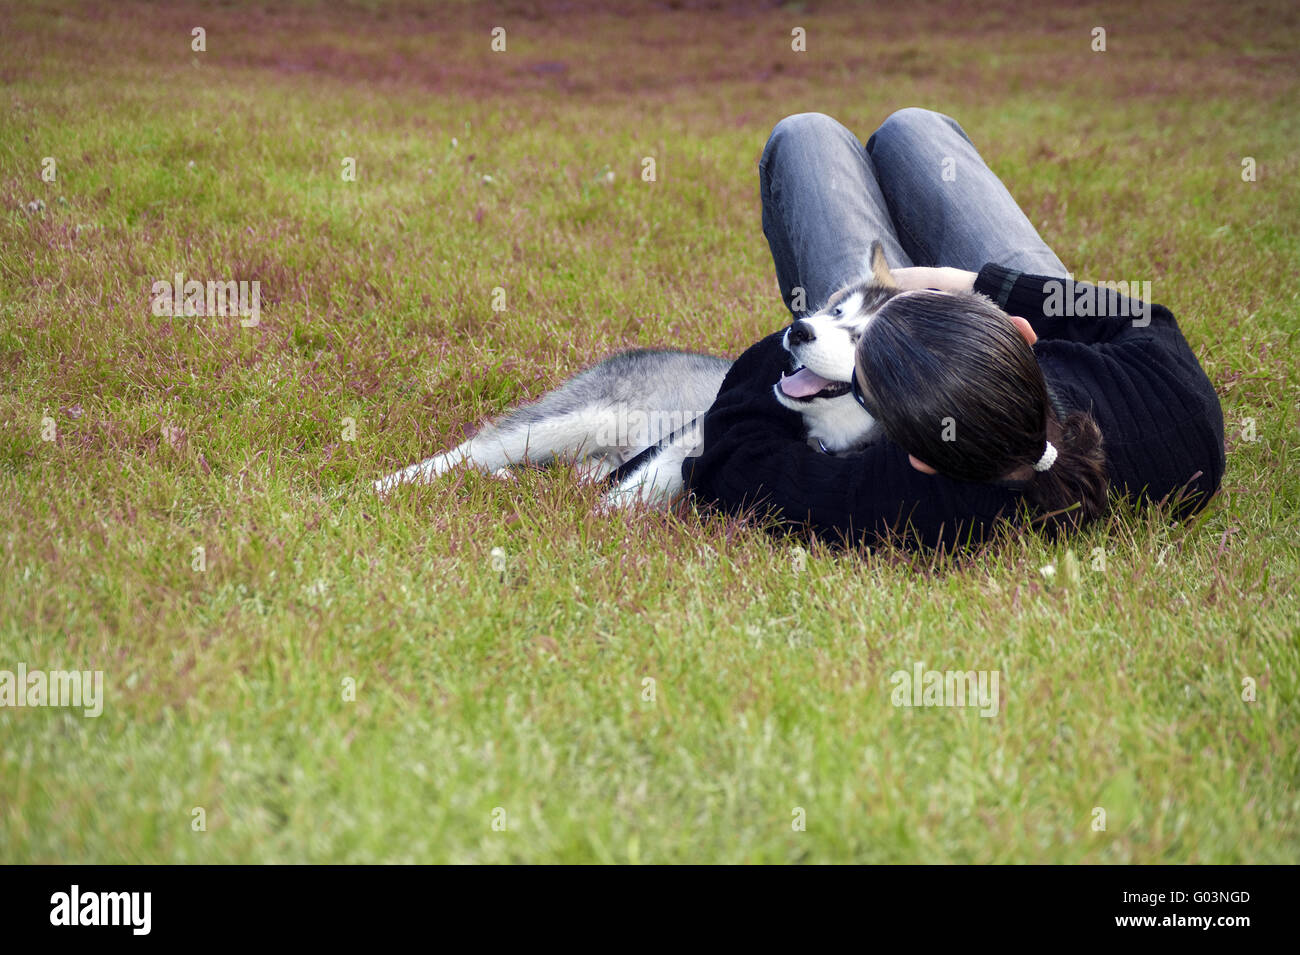 man are playing with his dog - Stock Image